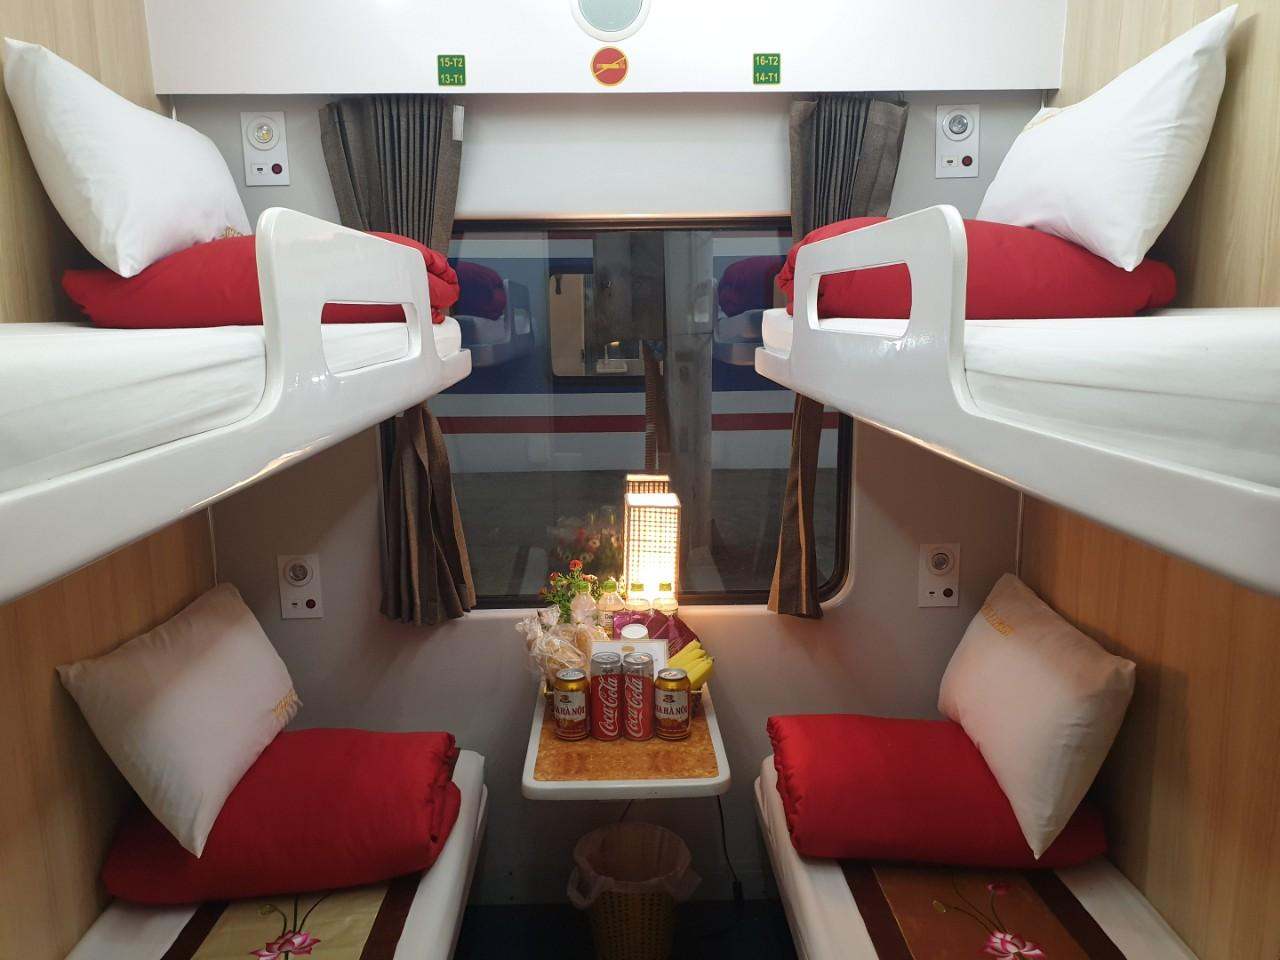 Huế - Ninh Bình  (21h30 – 09h20) (Deluxe 4 Berths Cabin, One Way)